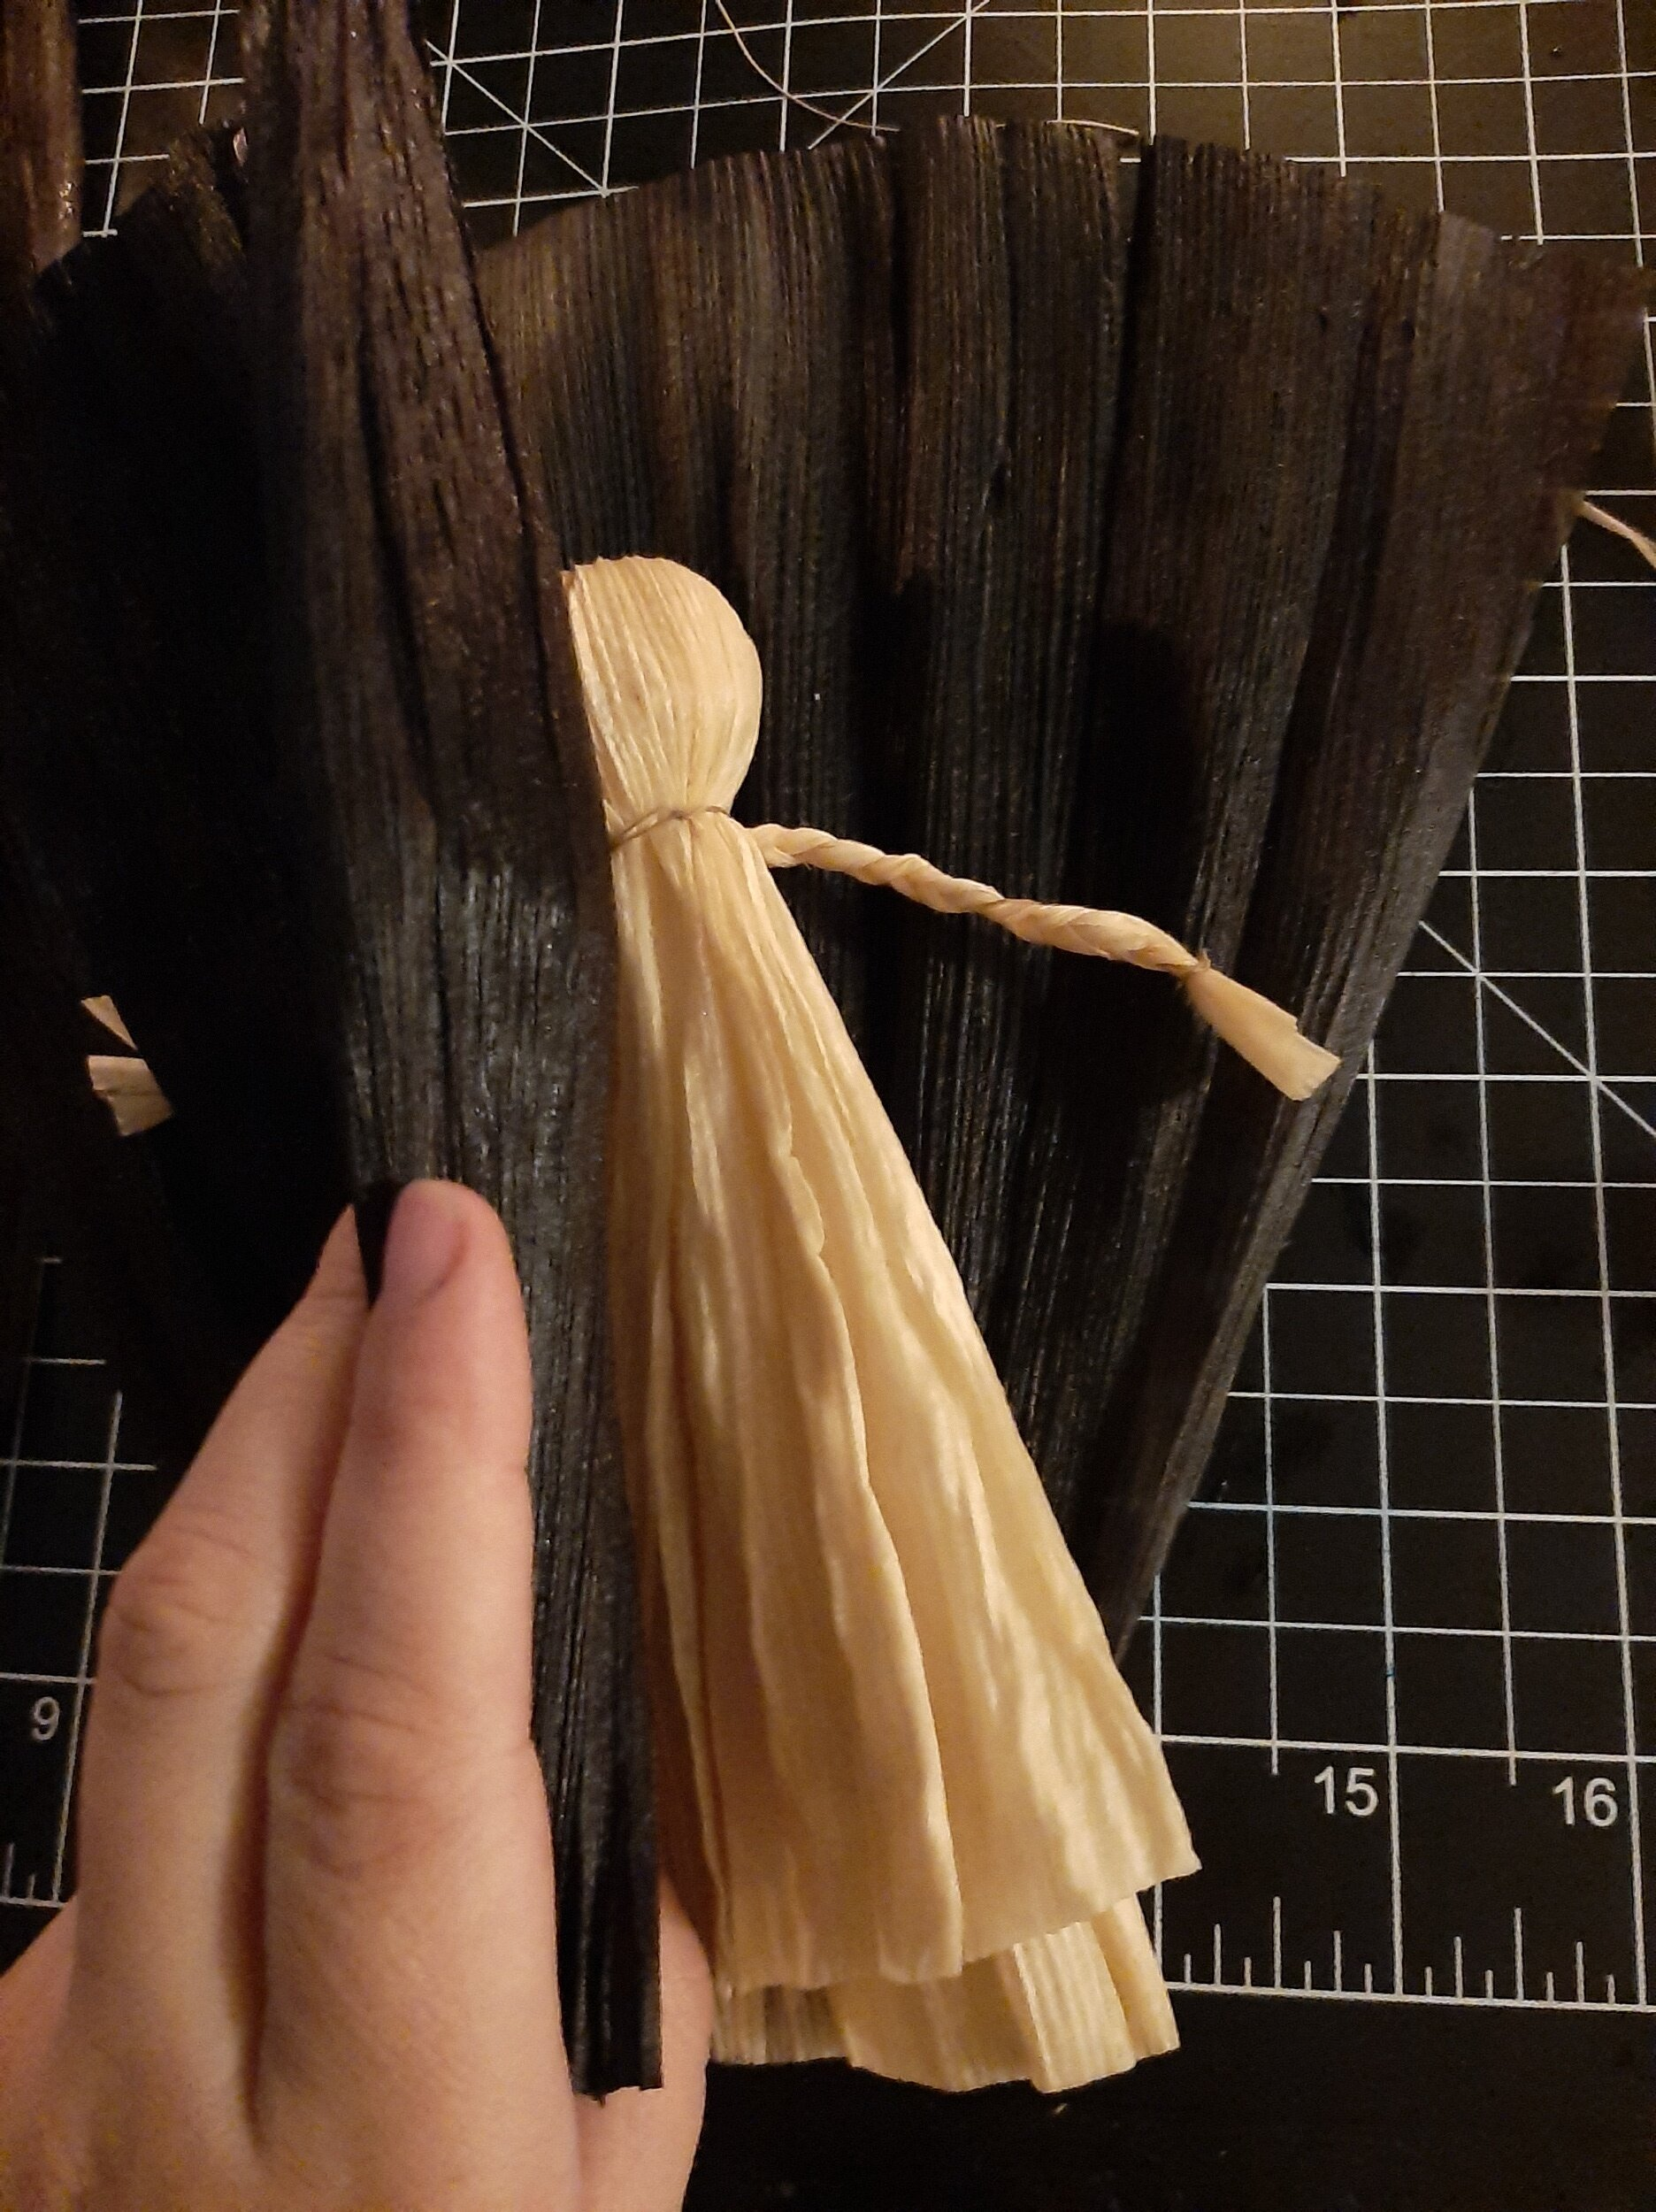 Placing my black husks top lined up with the bottom of my doll